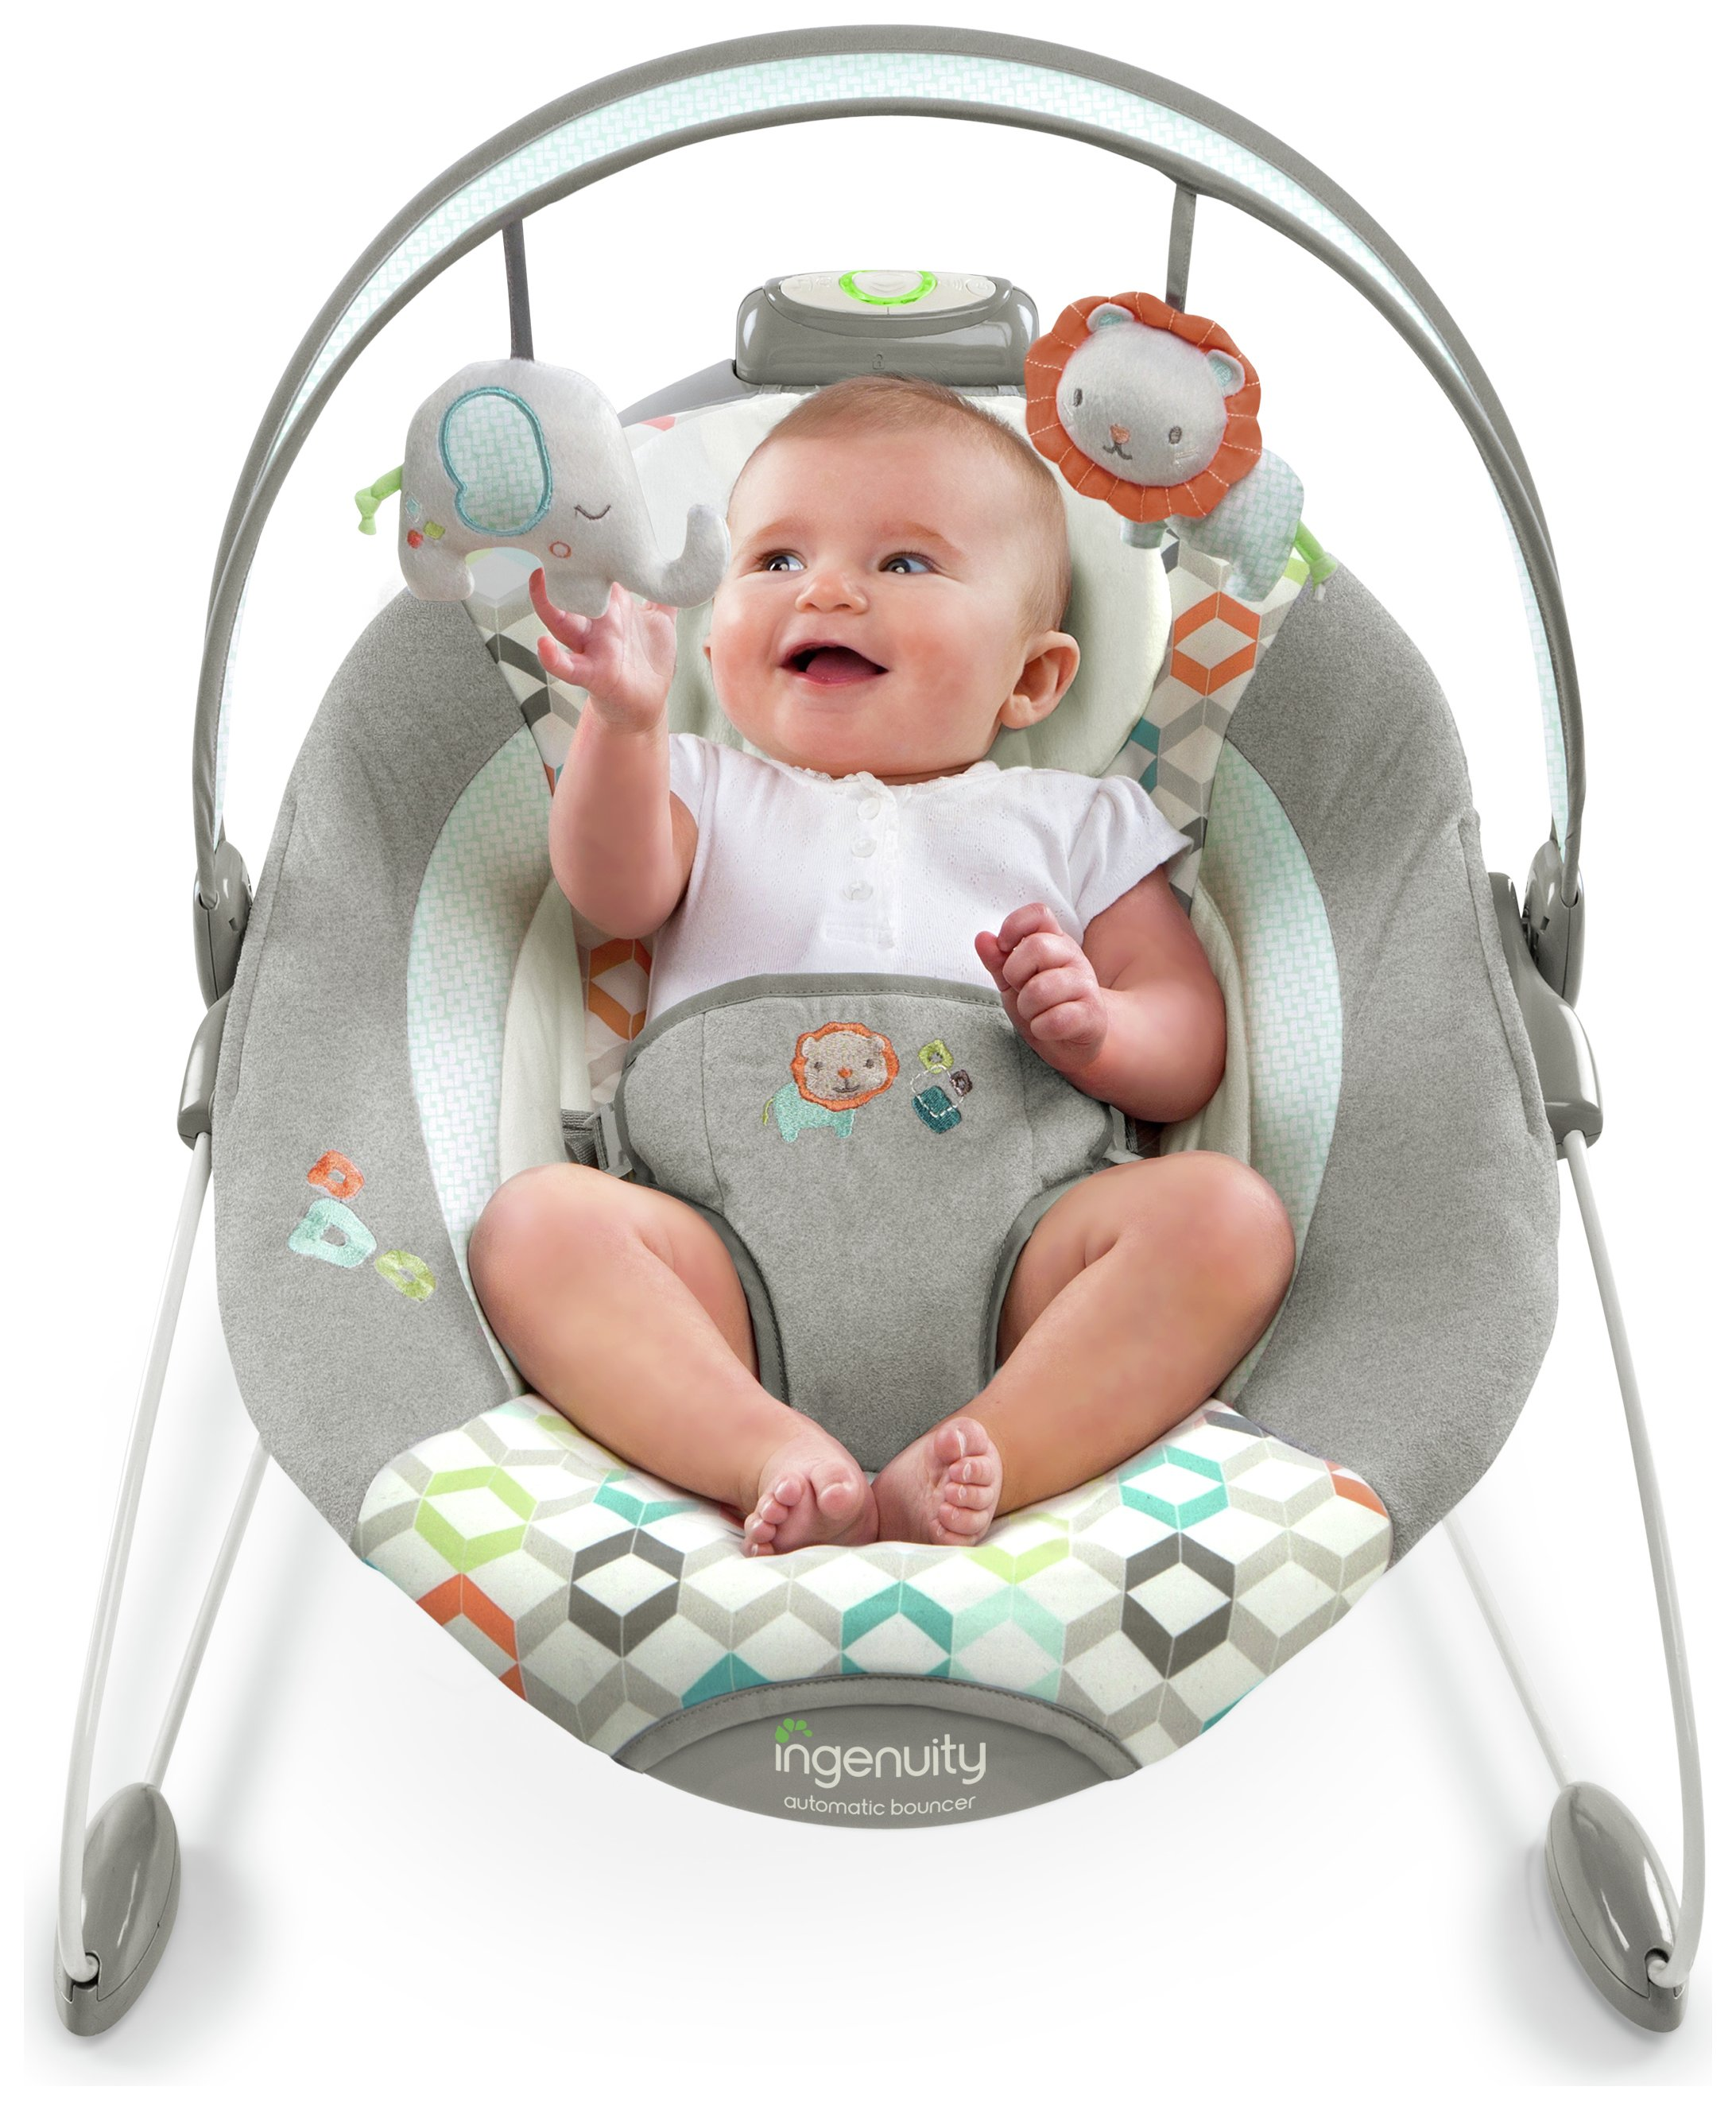 85 Bouncing Chair Best Baby Bouncer 5 Of The Bouncers